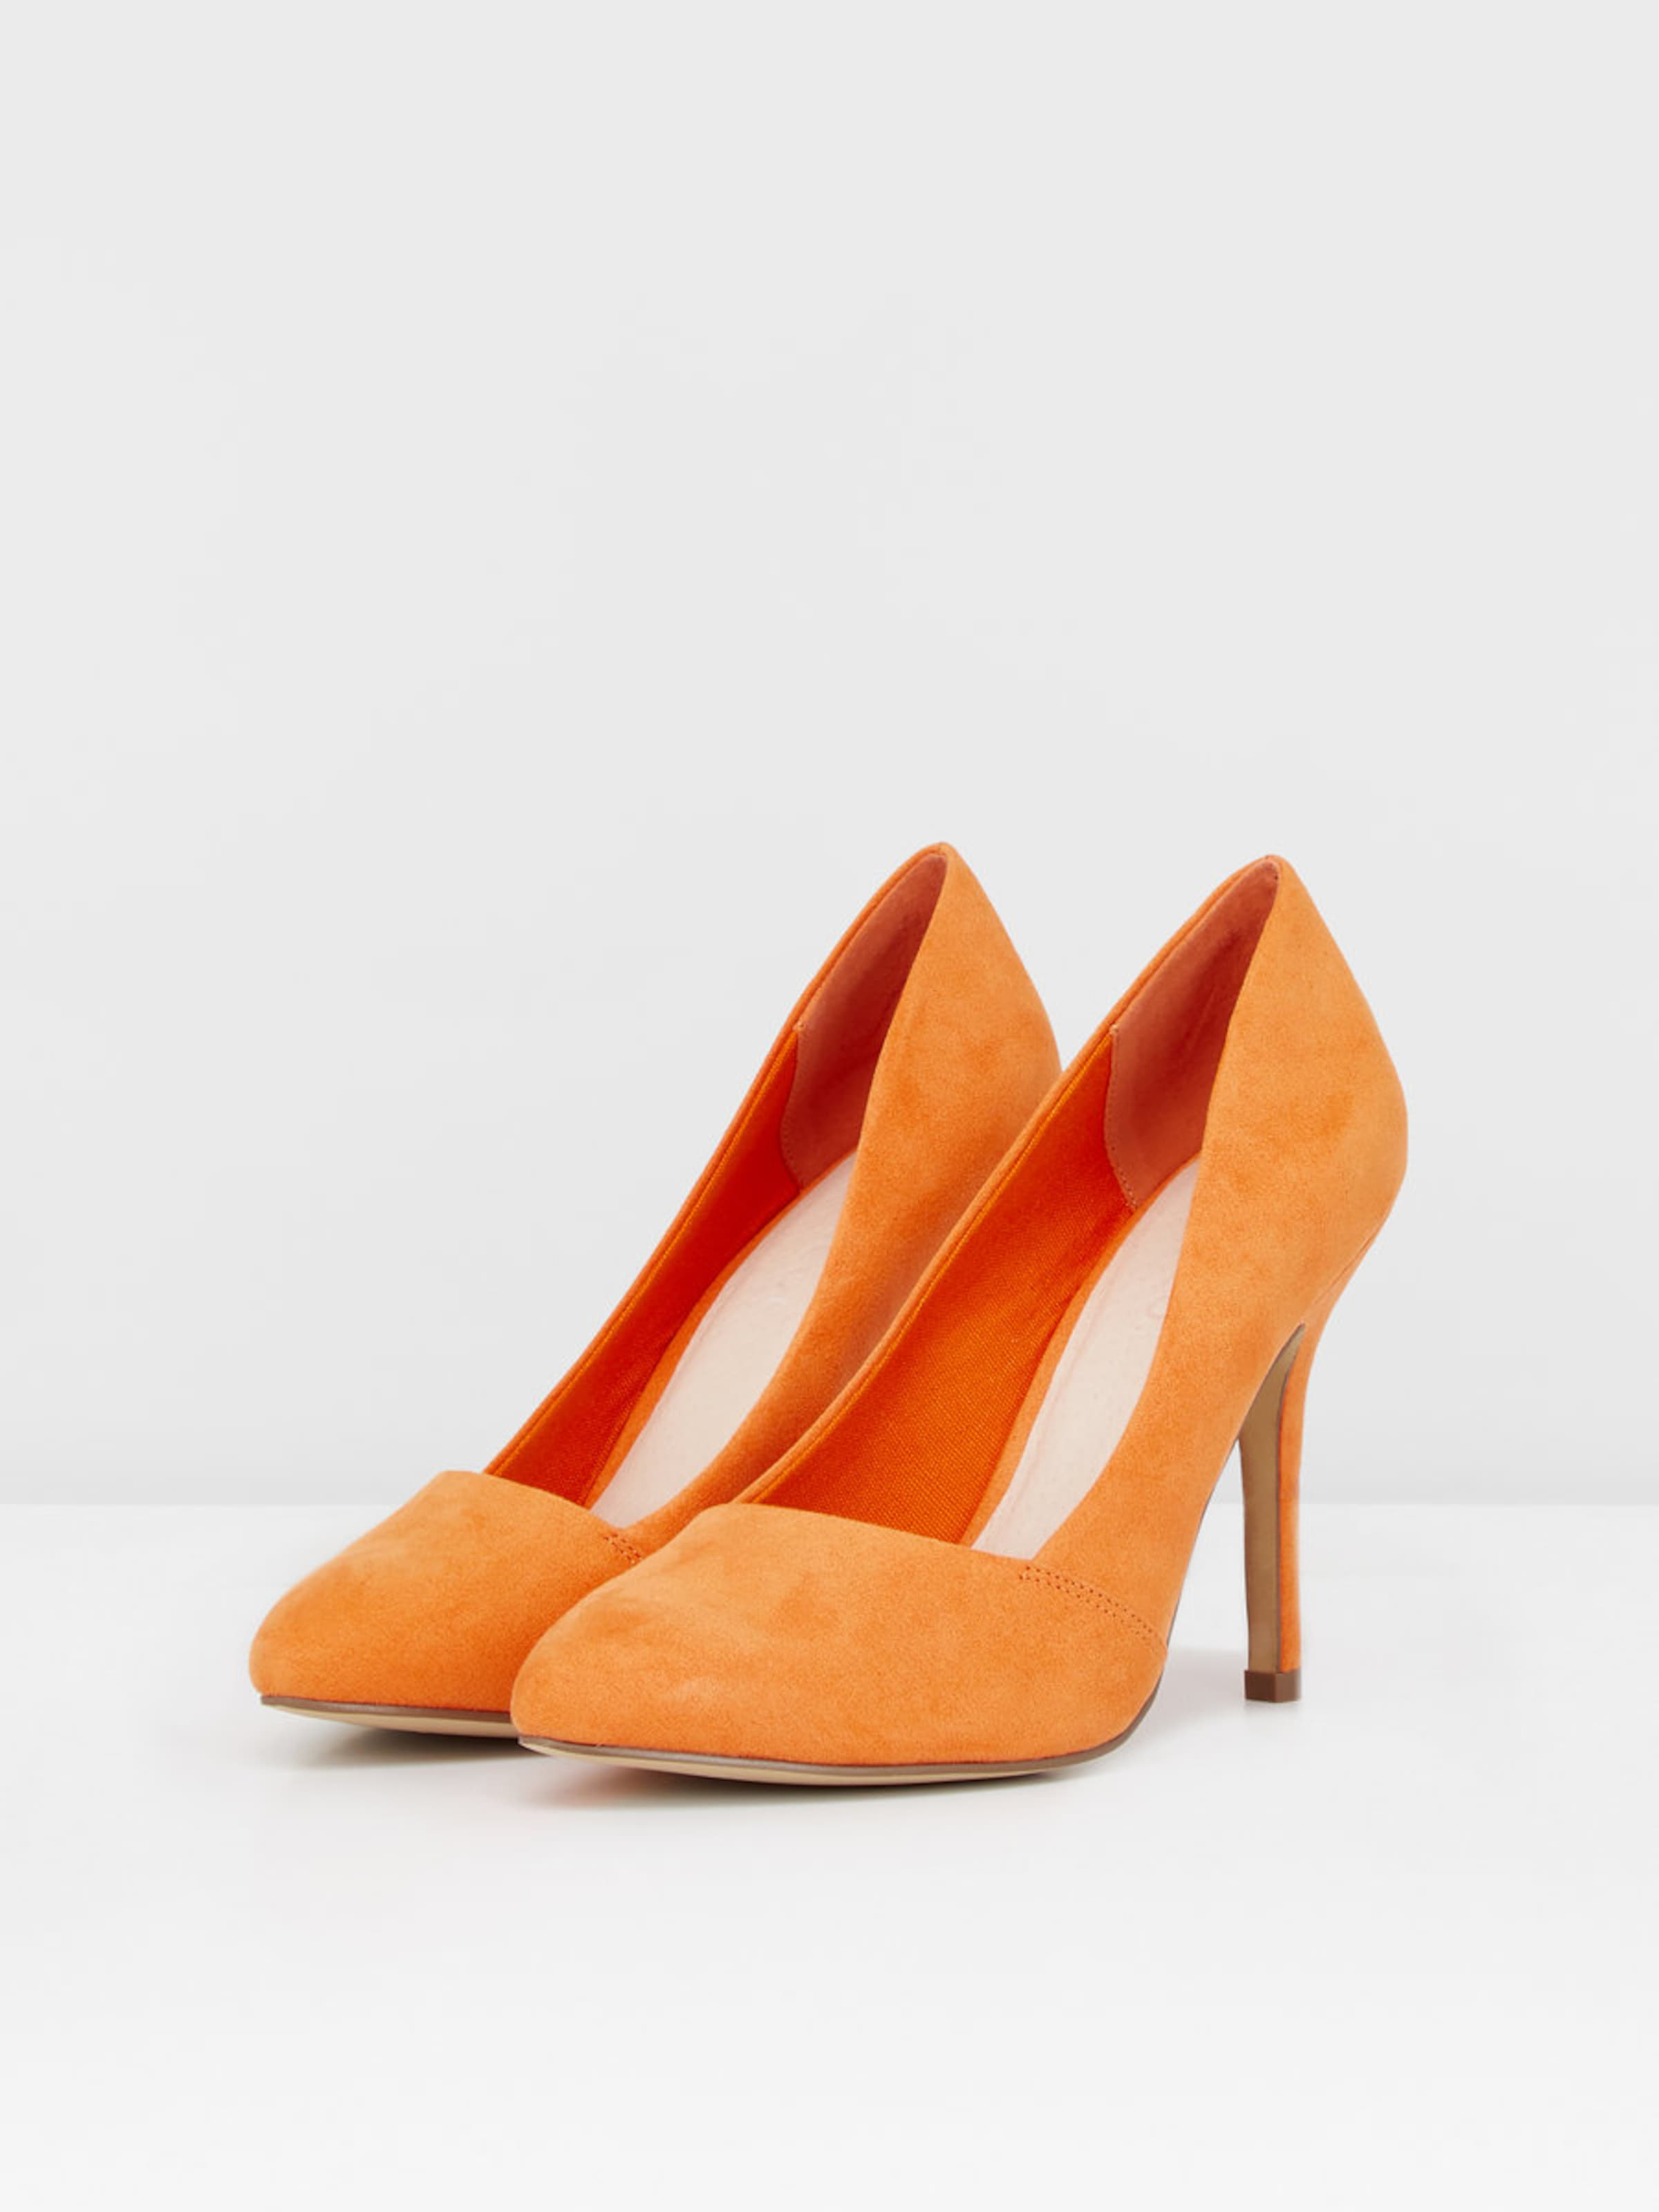 Bianco Slip-on Pumps, orange, Orange